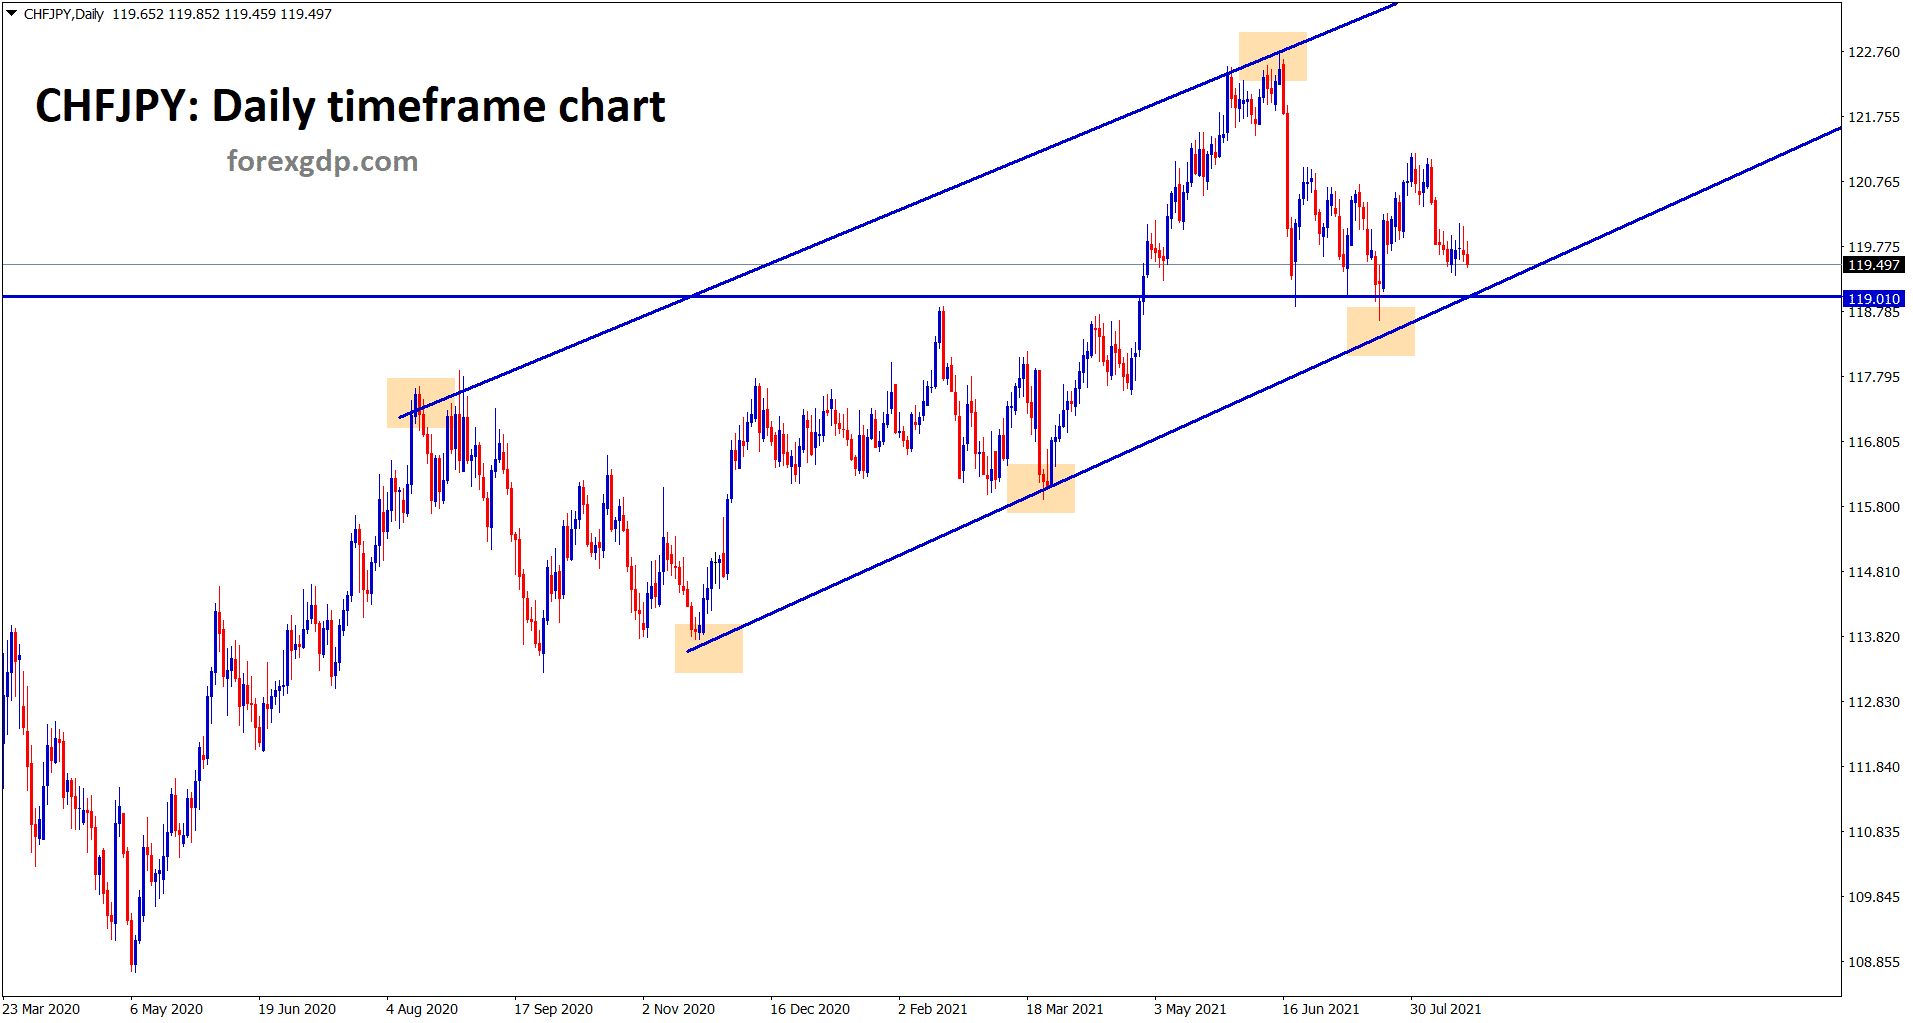 CHFJPY going to hit the higher low level of Uptrend line and the support area